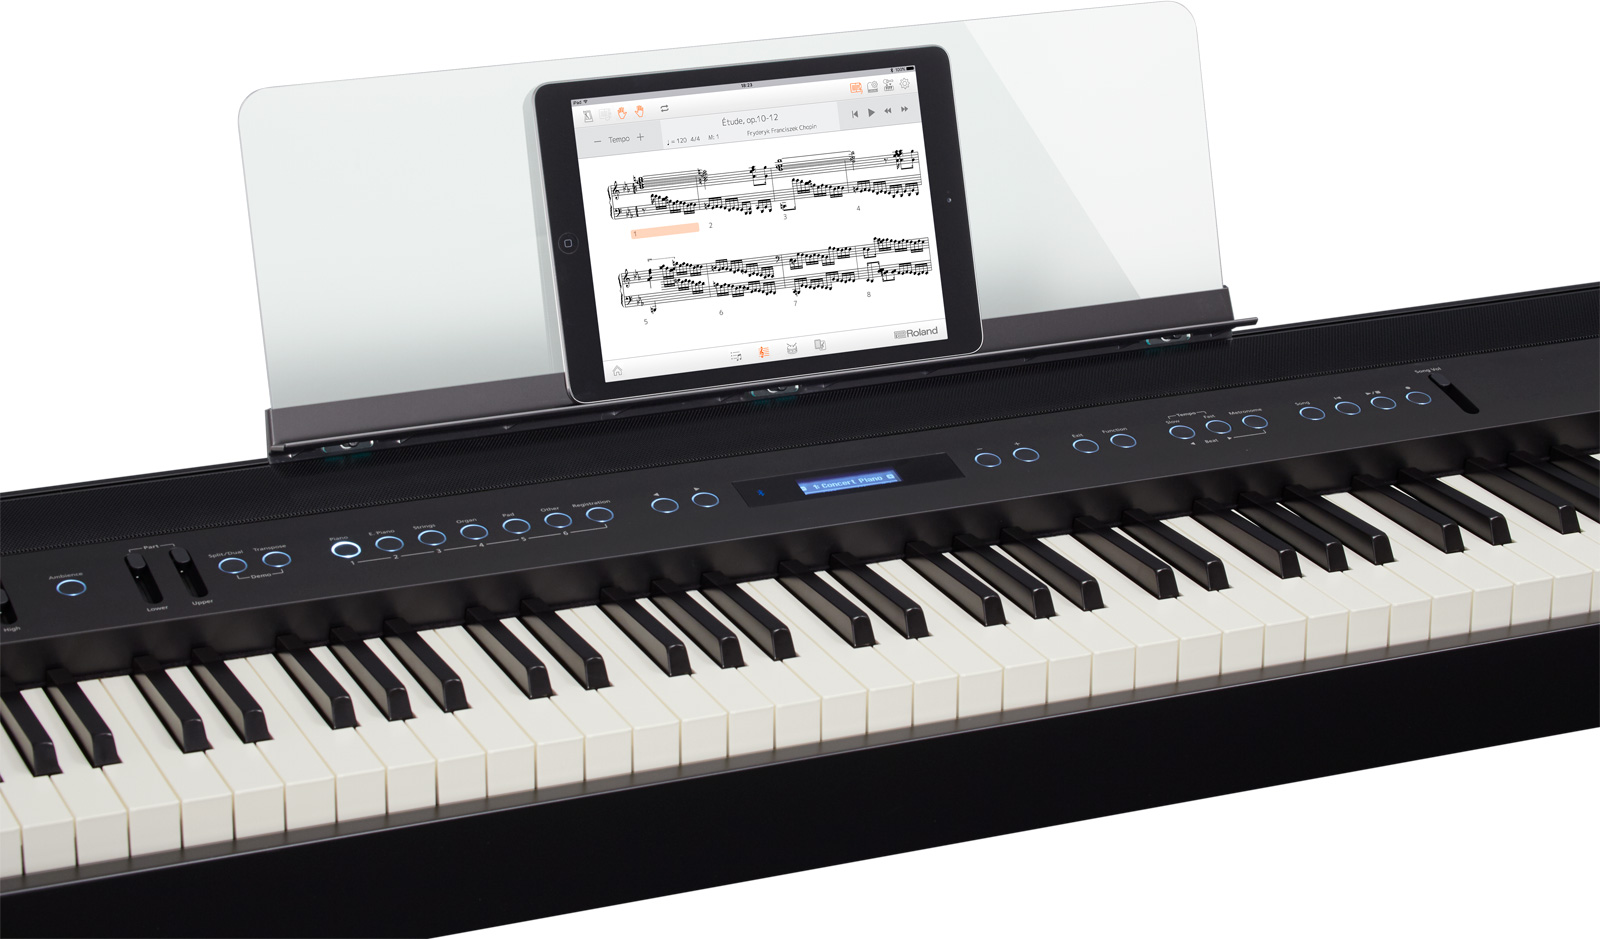 News Roland Presents The Complete Line Of Digital Pianos Fp 90 Fp 60 Fp 30